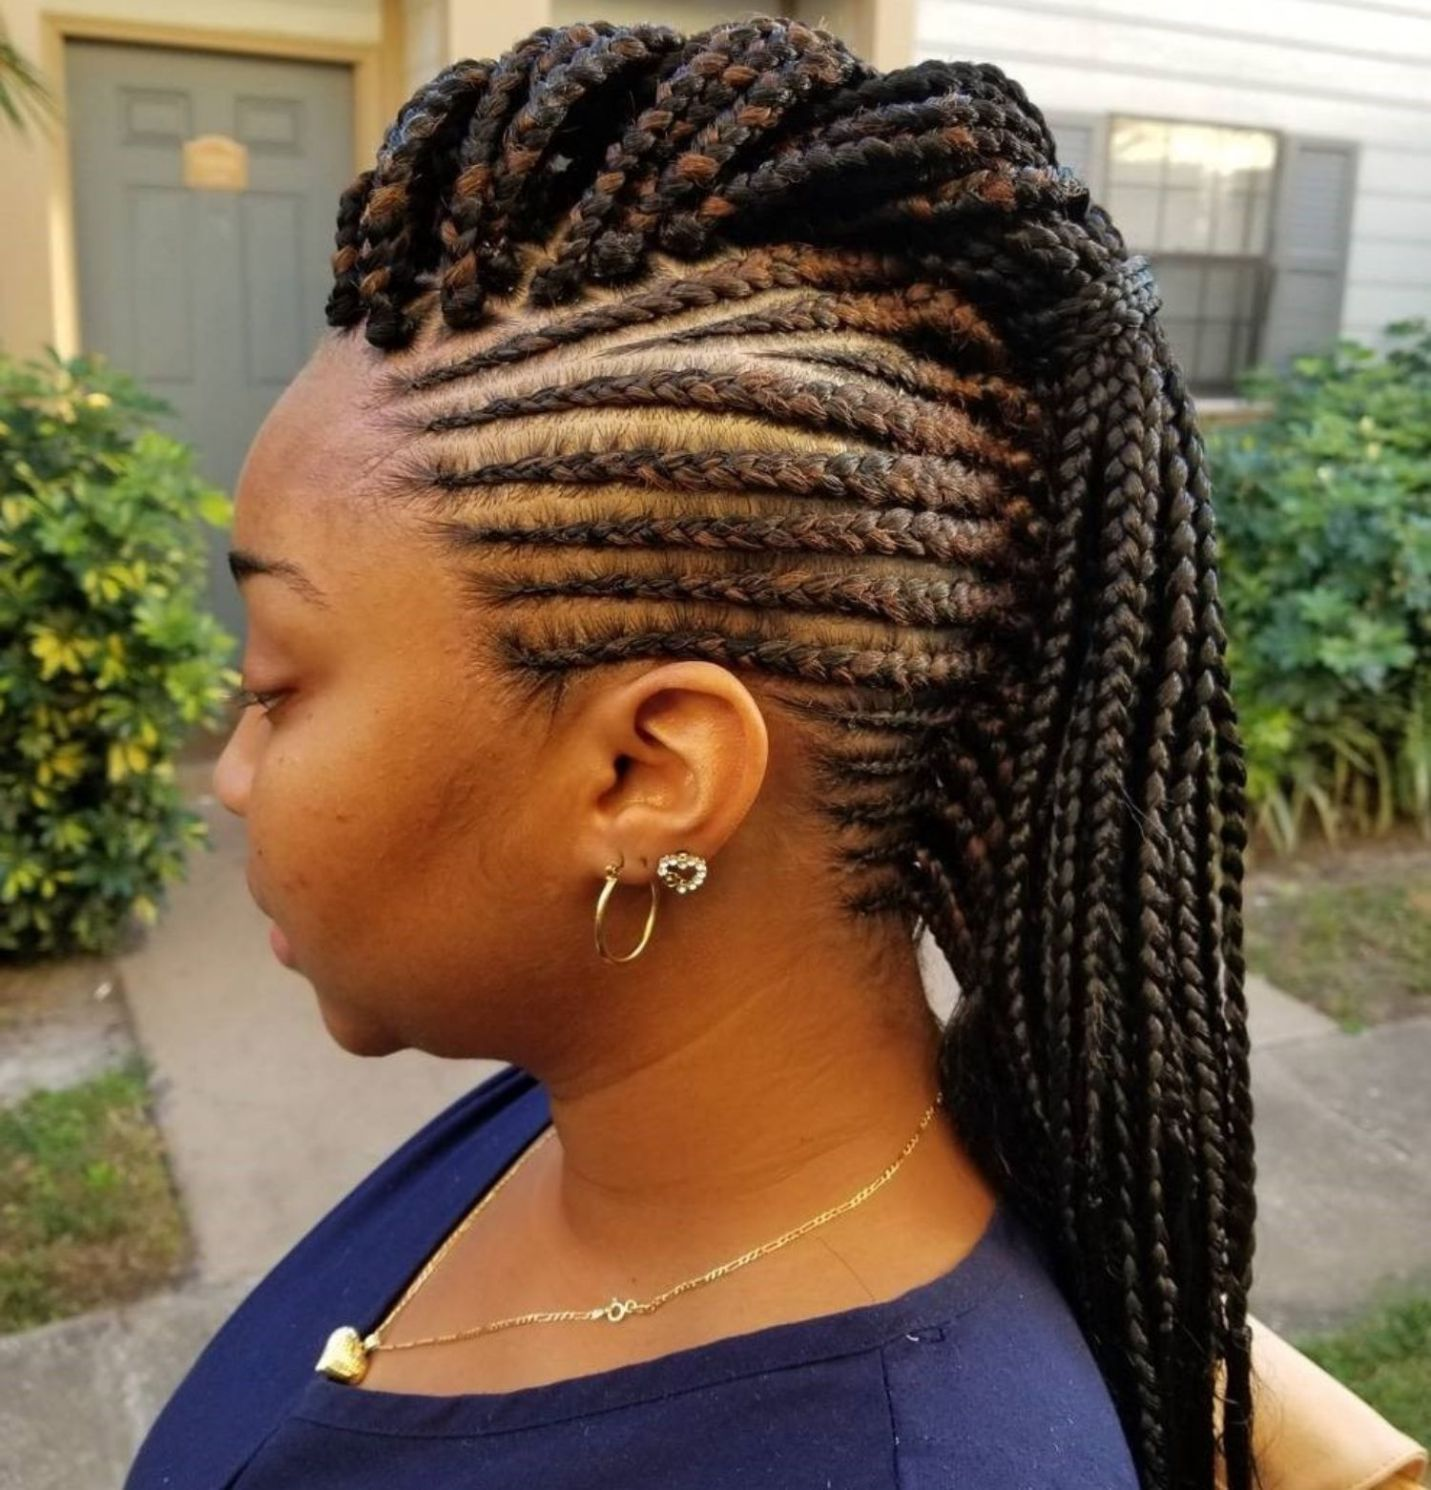 Best Black Braided Hairstyles That Turn Heads in ME